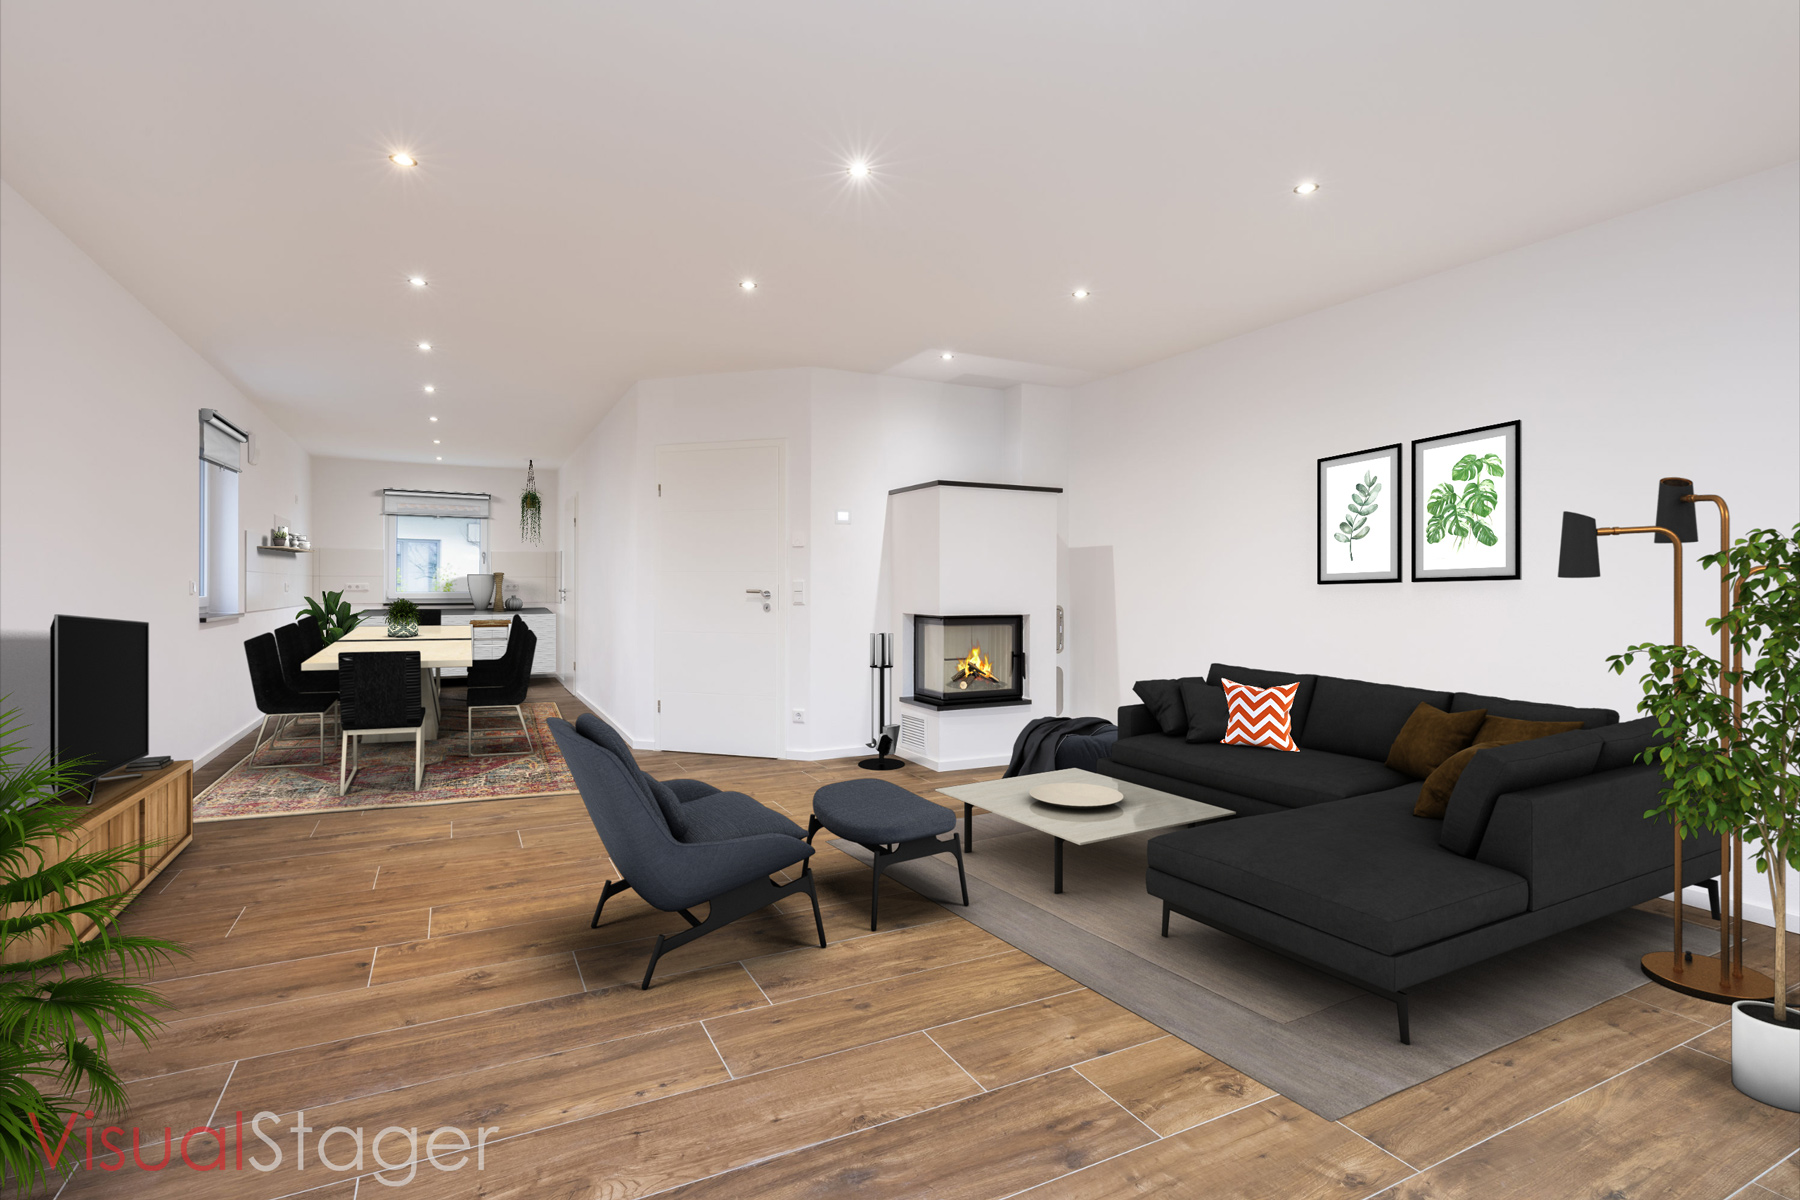 Virtual-Room-Staging-Augsburg-2